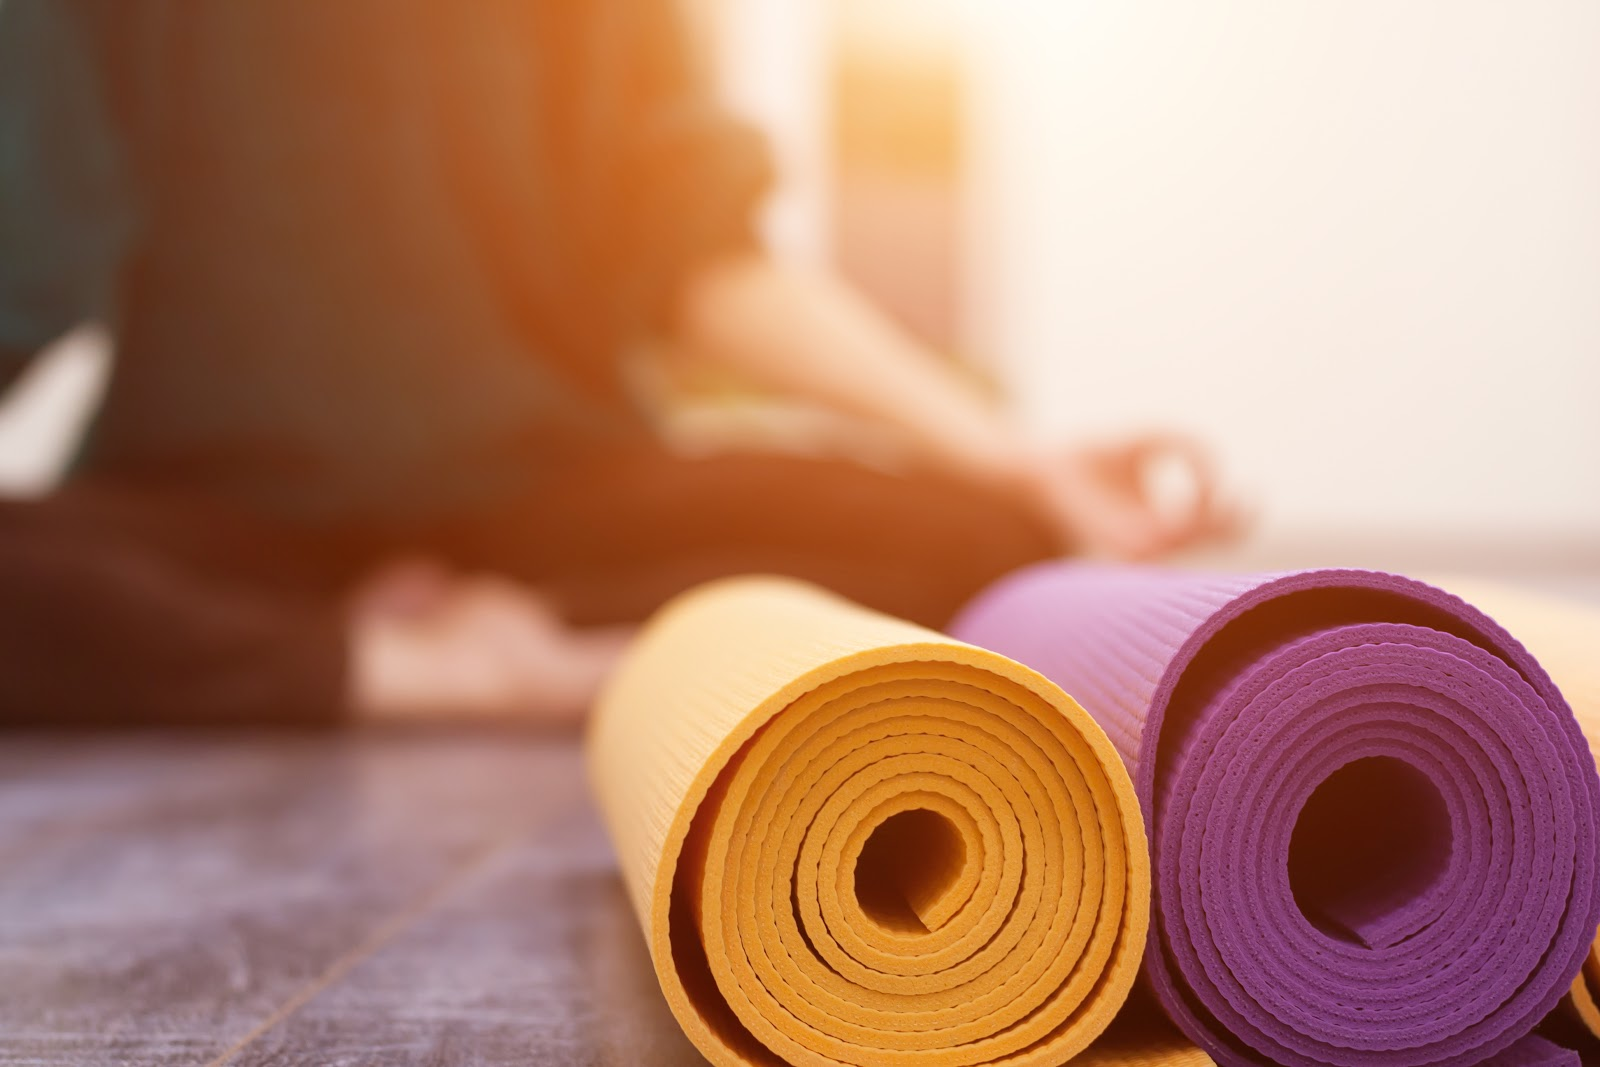 Yoga mats rolled up, woman in yoga pose, stress relief